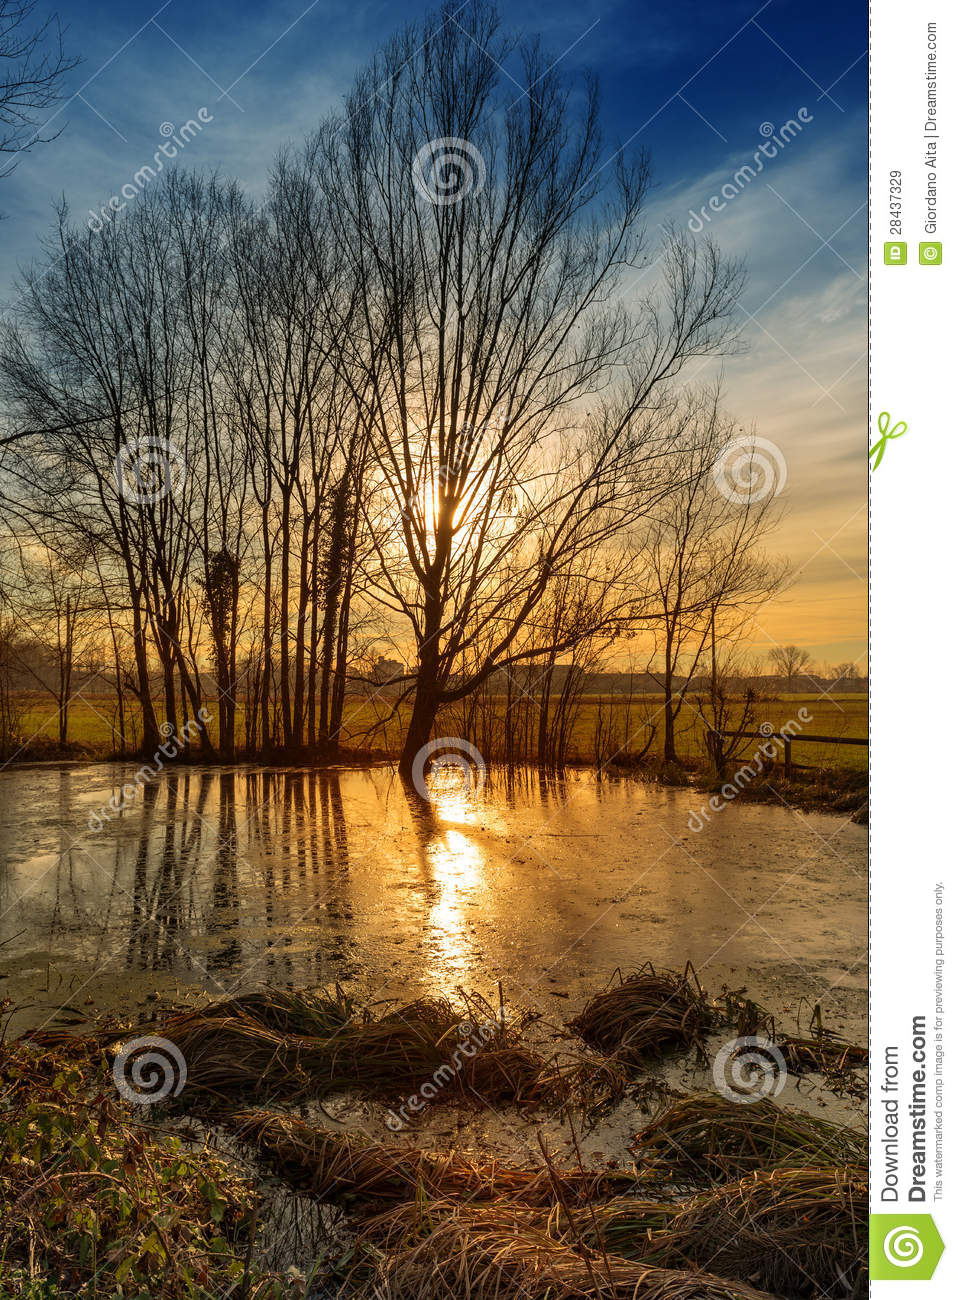 Sunset pond royalty free stock image for Pond dealers